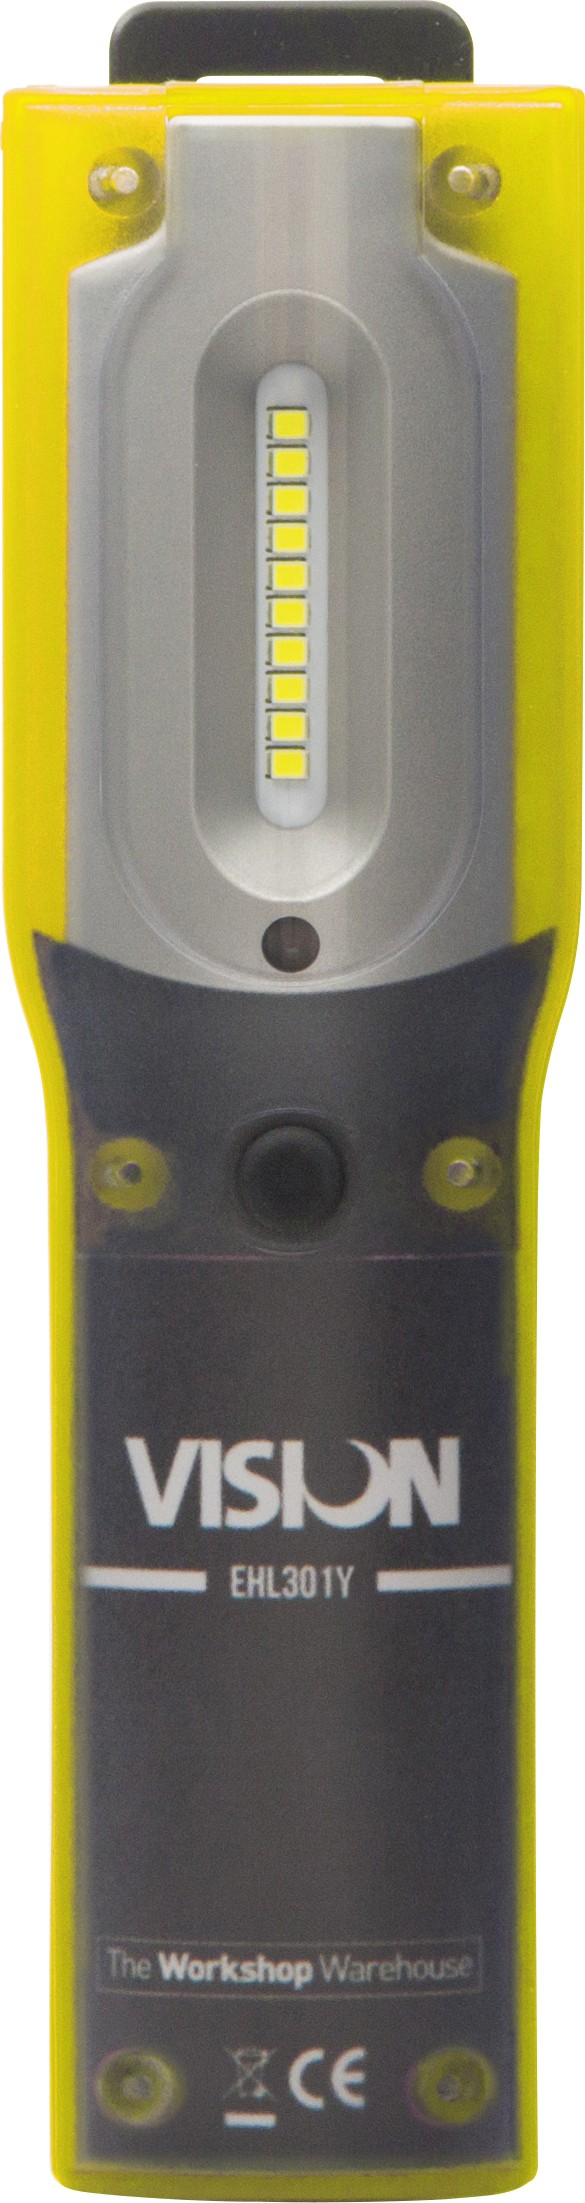 VISION COMPACT HAND LAMP UV TORCH 500 LUMENS